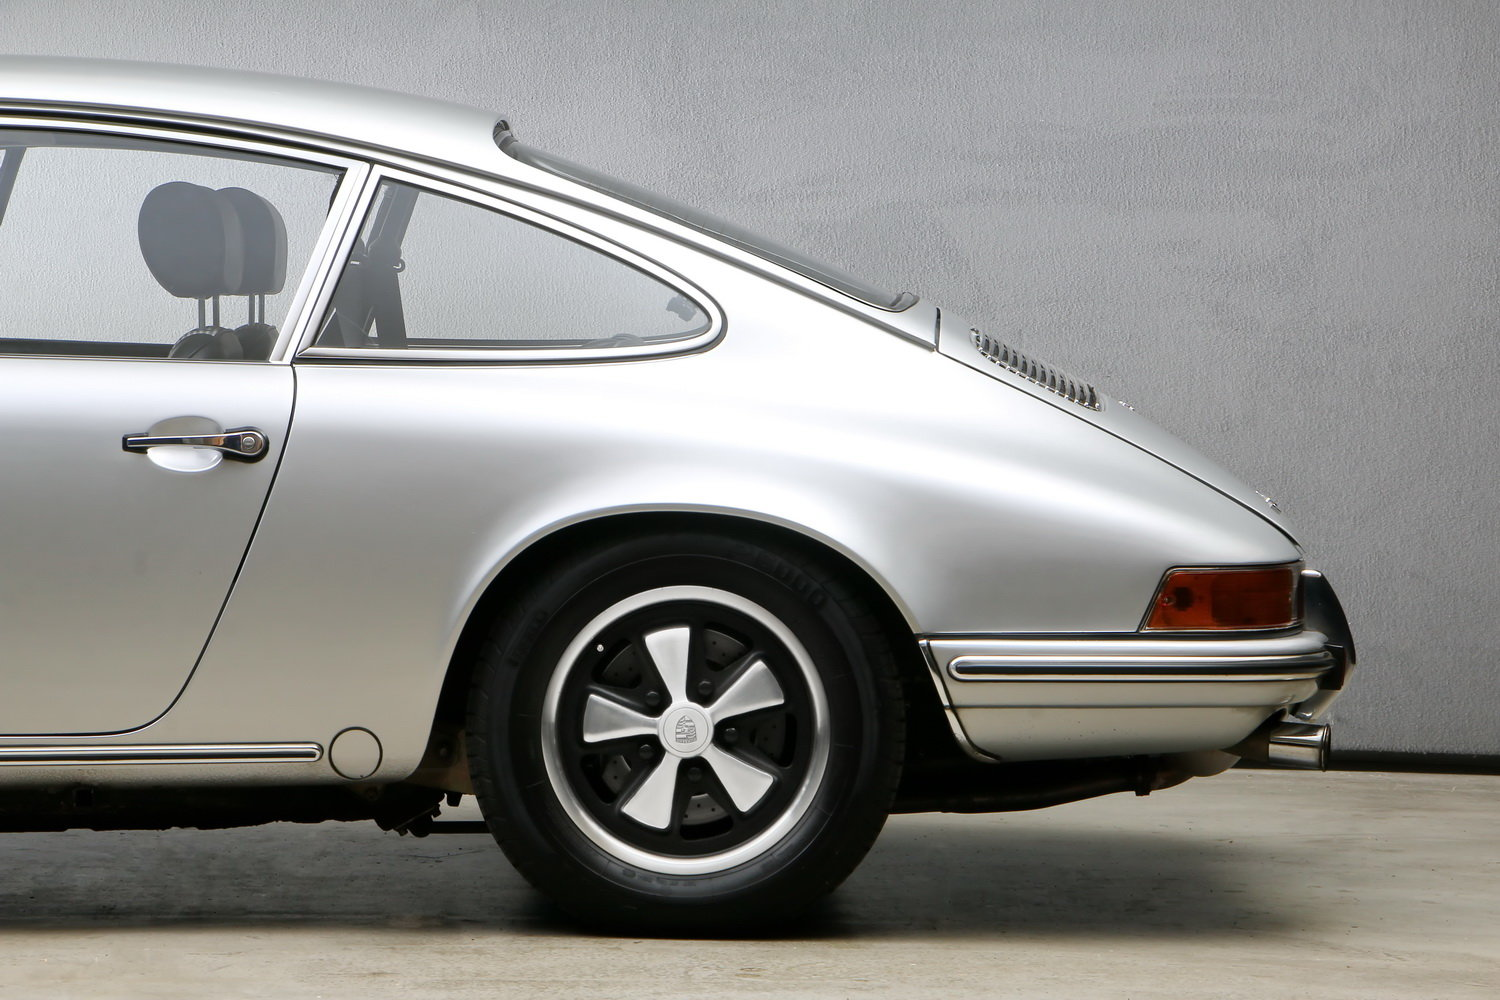 1970 911T 2.2 Ltr. Coup - Individualumbau - For Sale (picture 8 of 12)